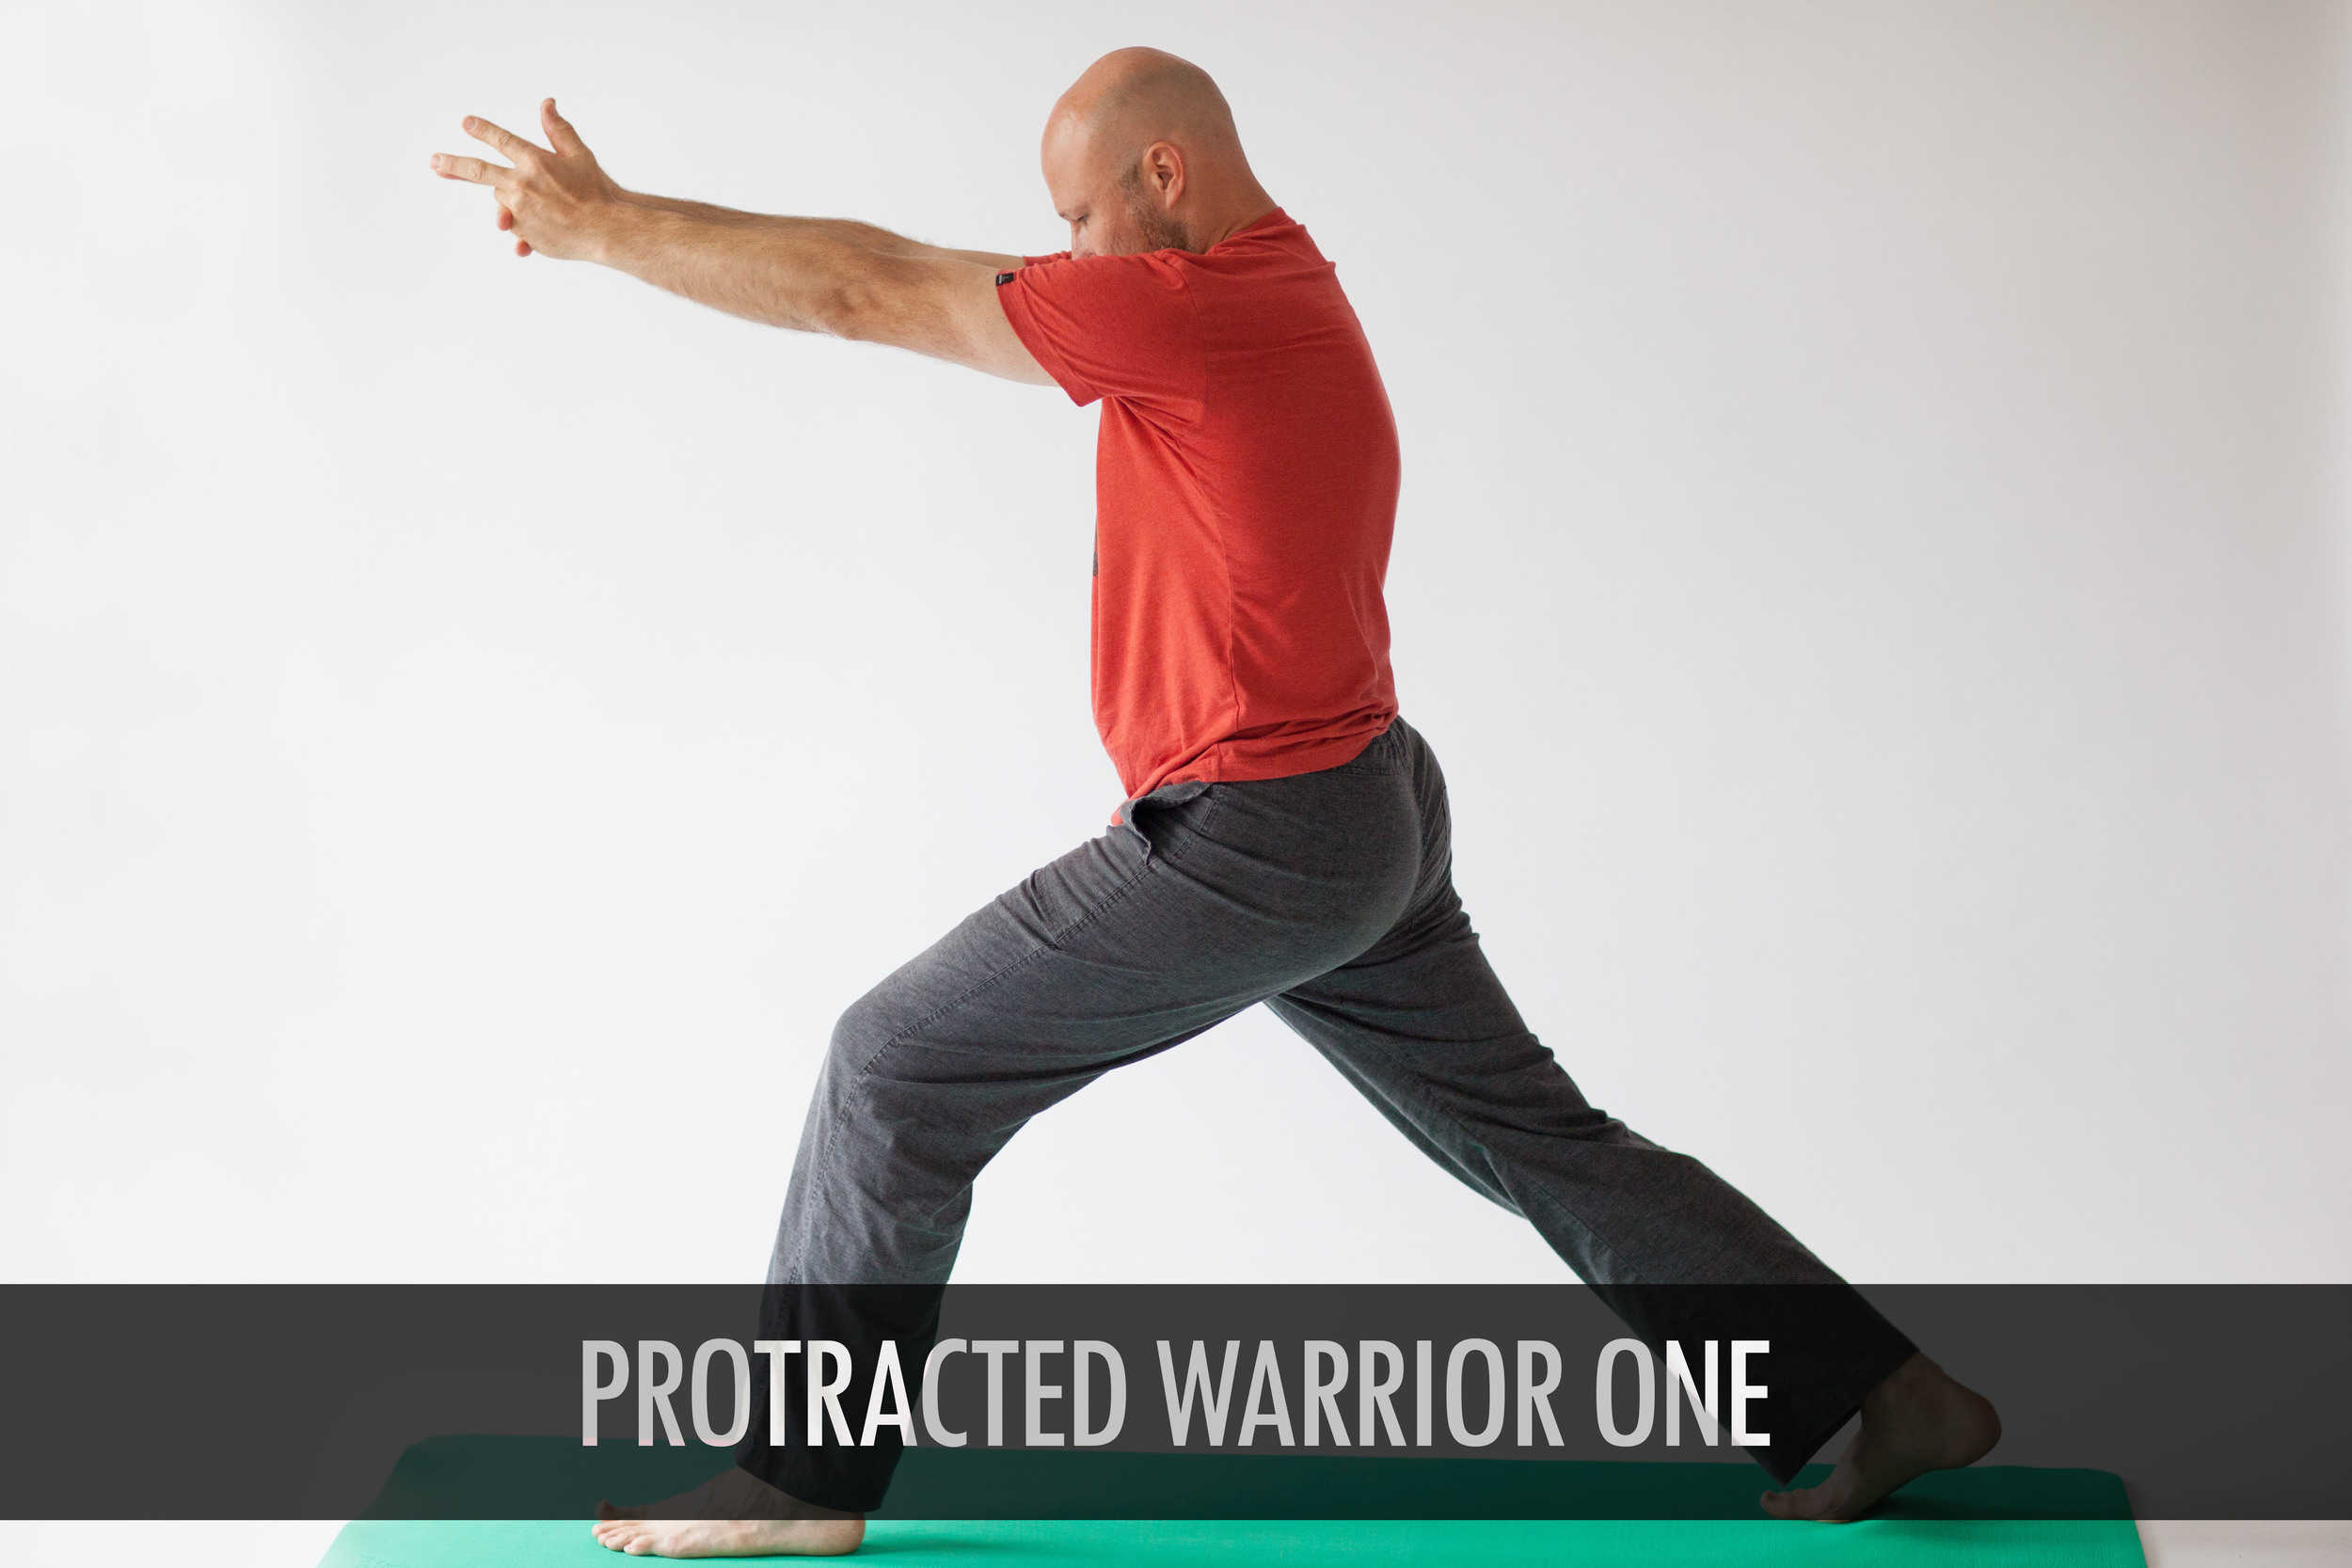 Protracted Warrior One.jpg